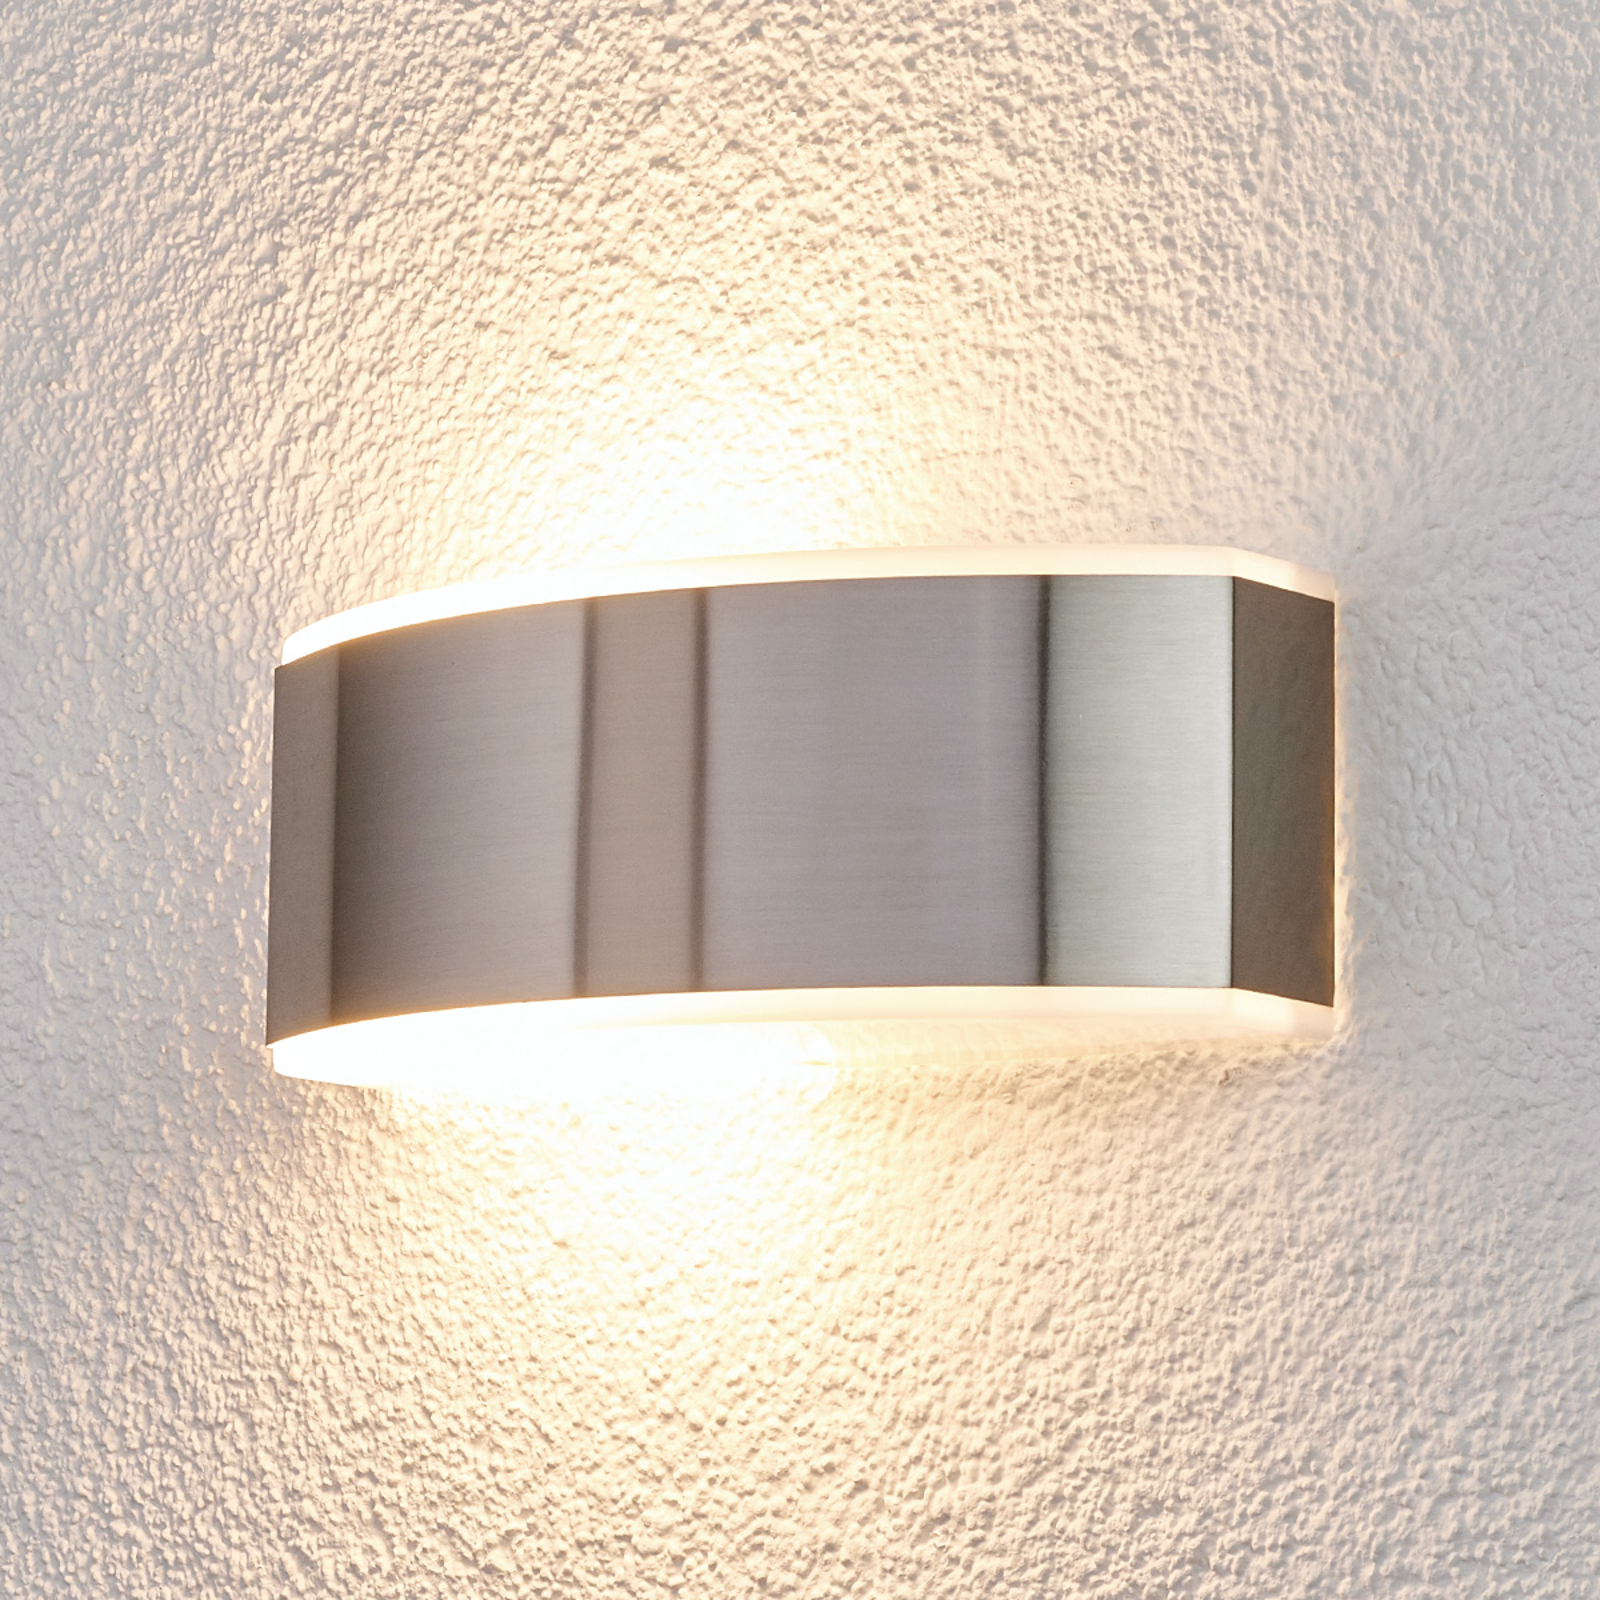 Stainless steel wall light Pacon for outdoor use_9977020_1